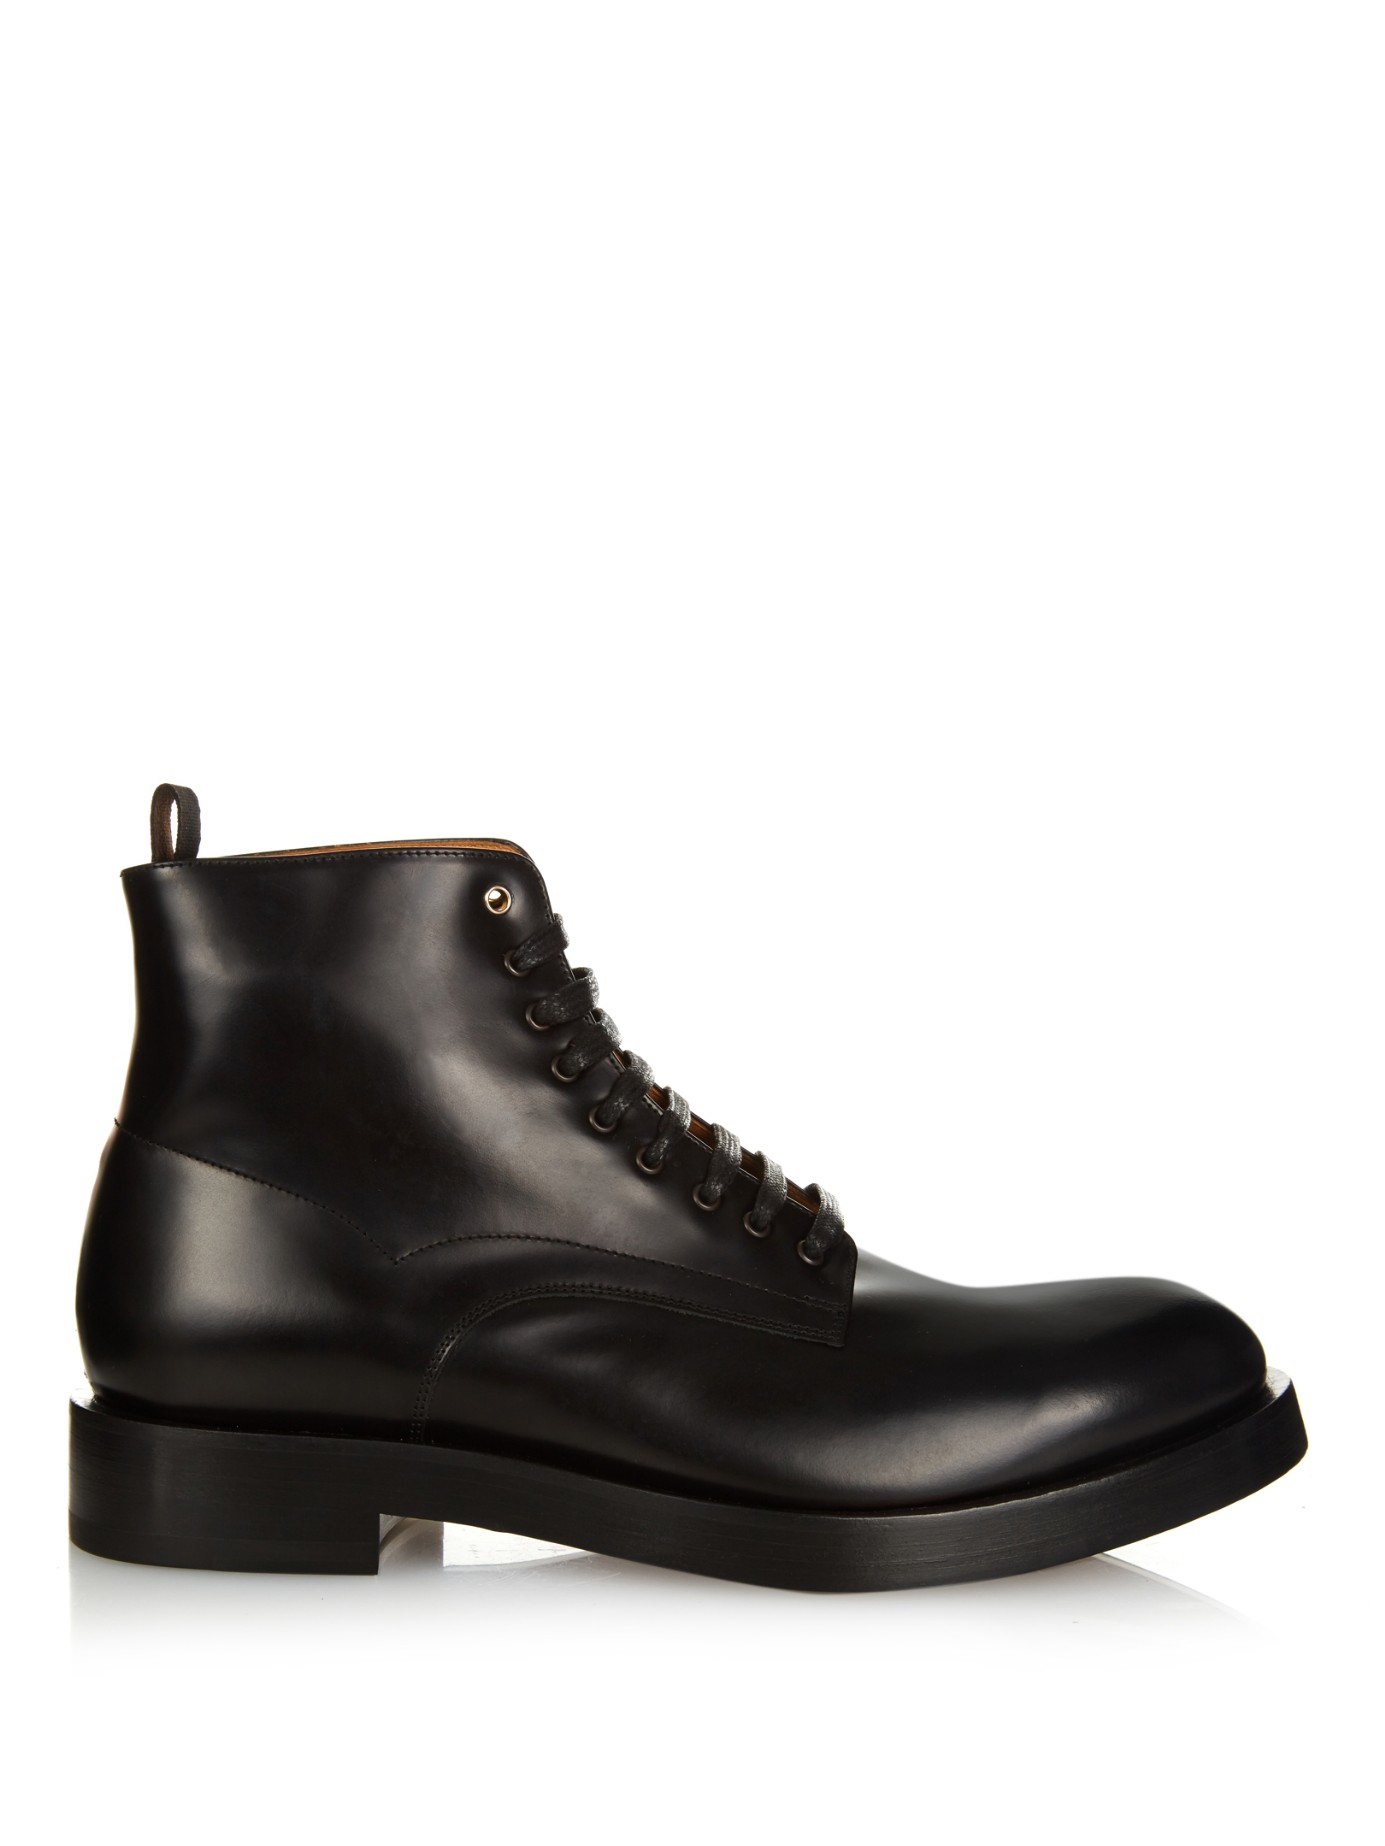 lace-up shoes - Black Paul Smith II37aT